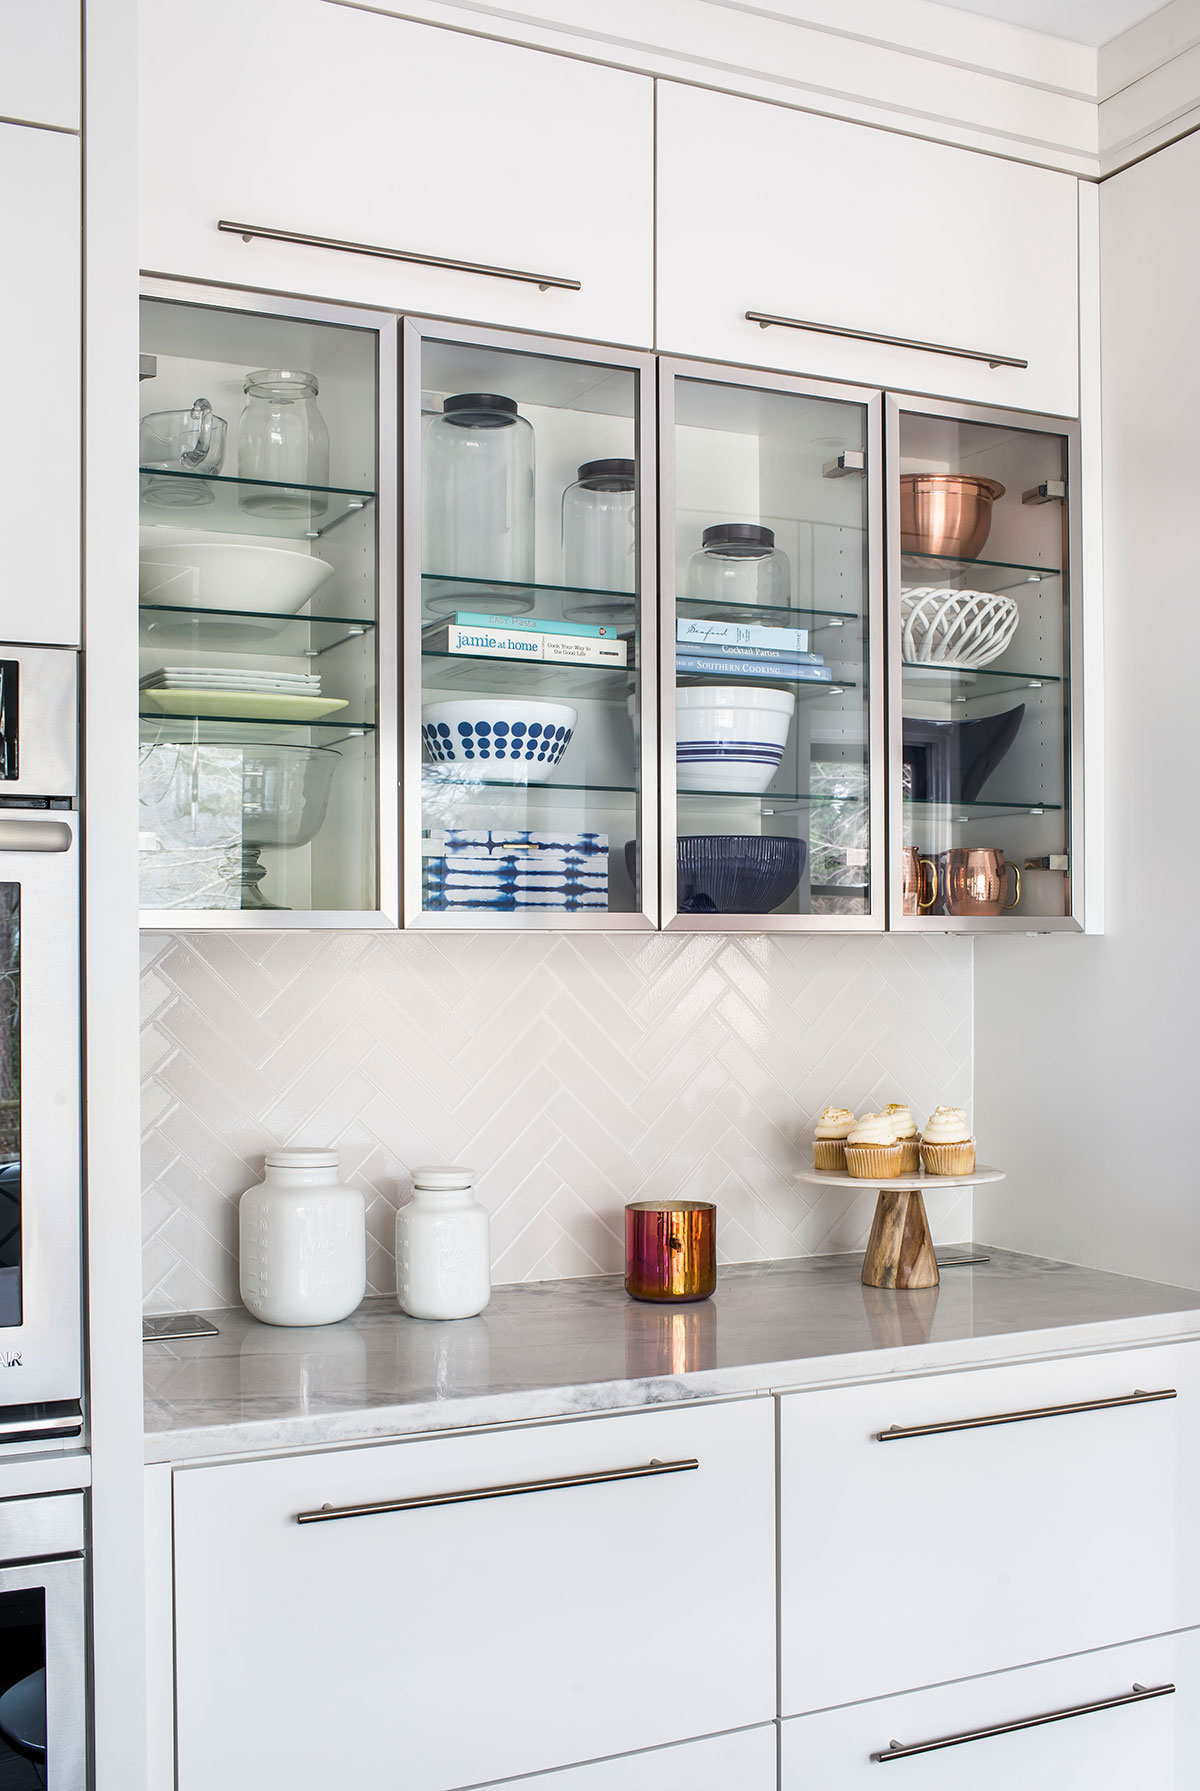 Contemporary kitchen with white backsplash, marble countertops, and glass shelving